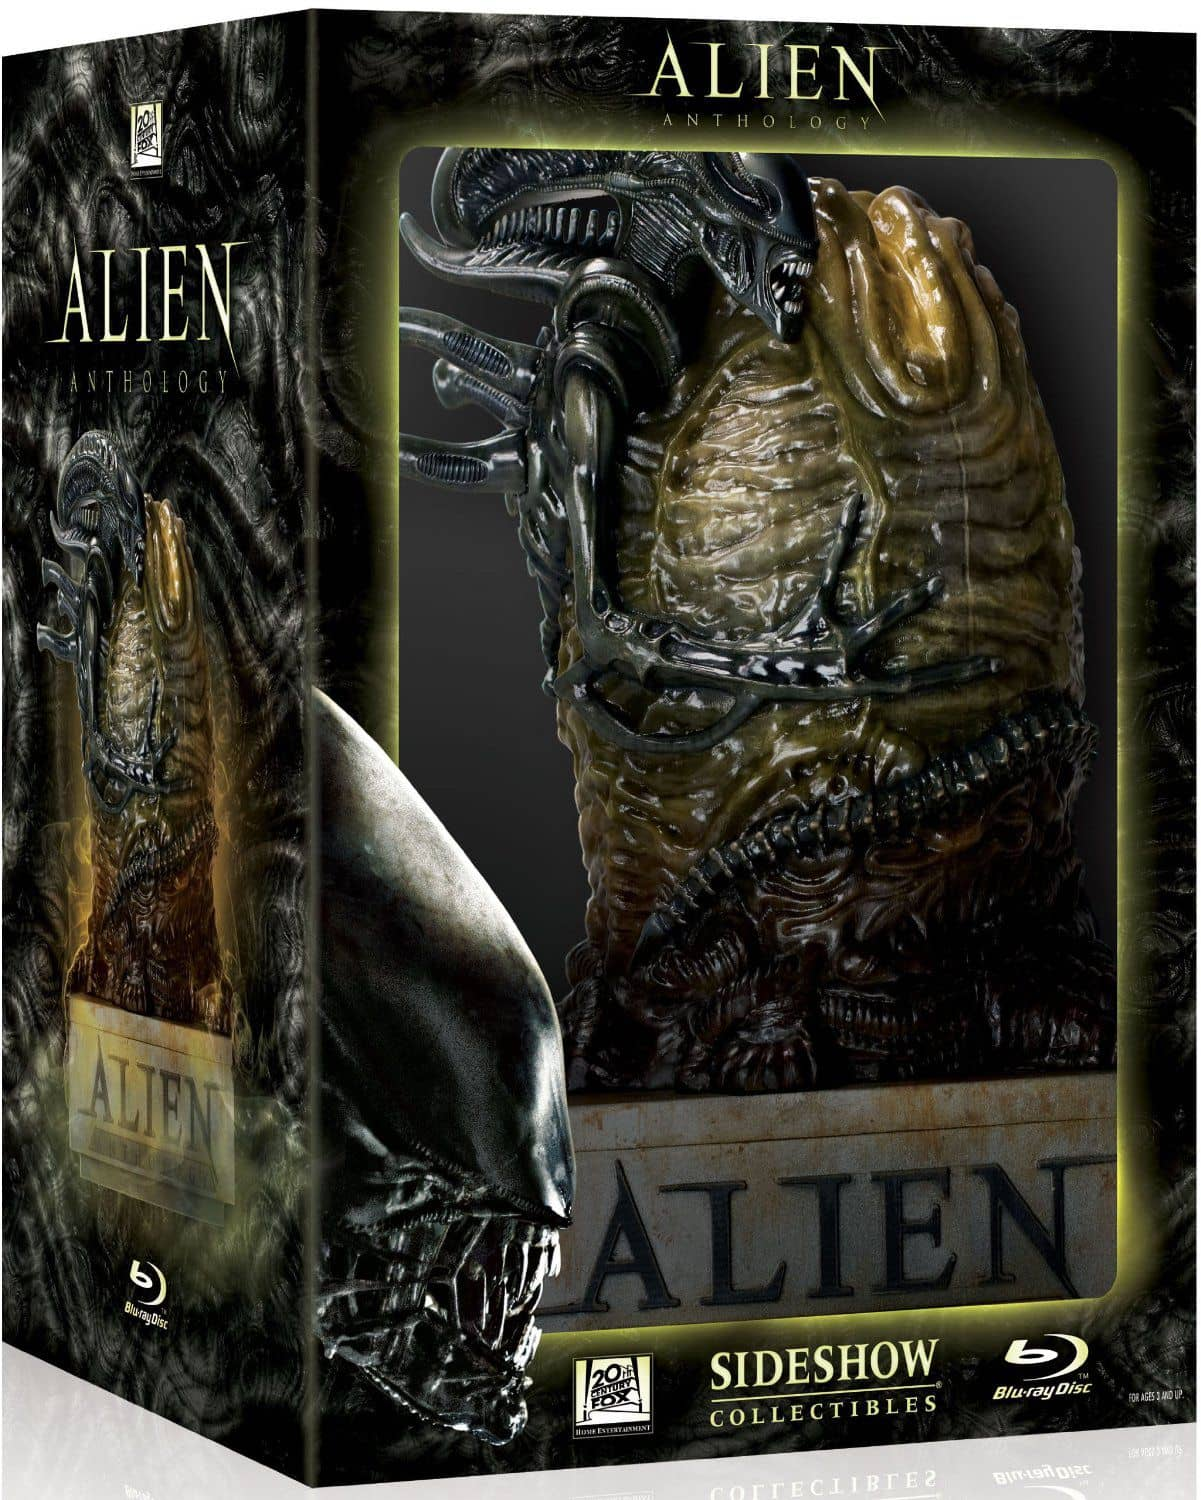 Alien Quadrilogia em Blu-Ray. Embalagem Ovo Alien. ( Alien Anthology (Alien / Aliens / Alien 3 / Alien: Resurrection) (Egg Packaging) [Blu-ray] (2010)